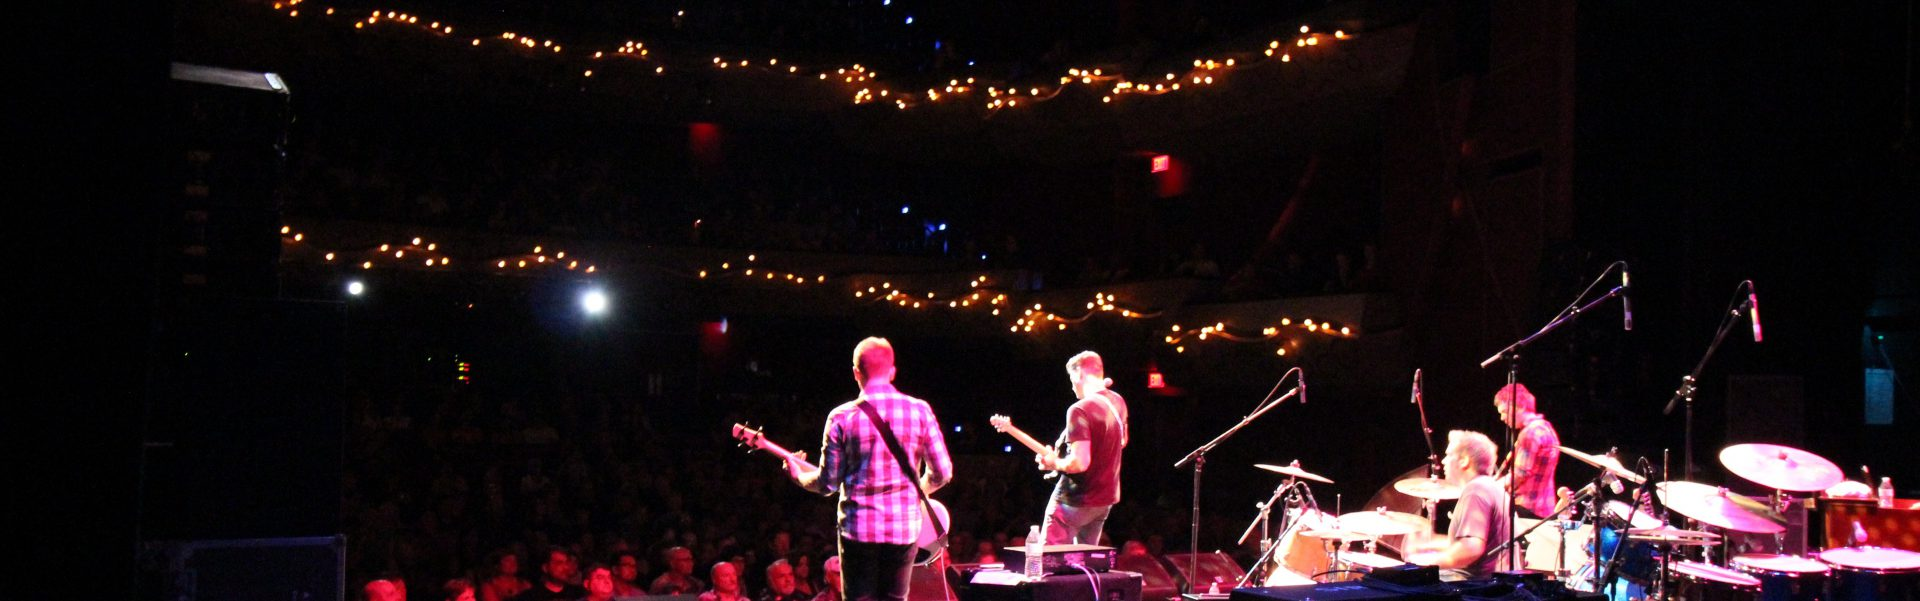 craig-kelley-band-whitaker-center-kenny-wayne-shepherd